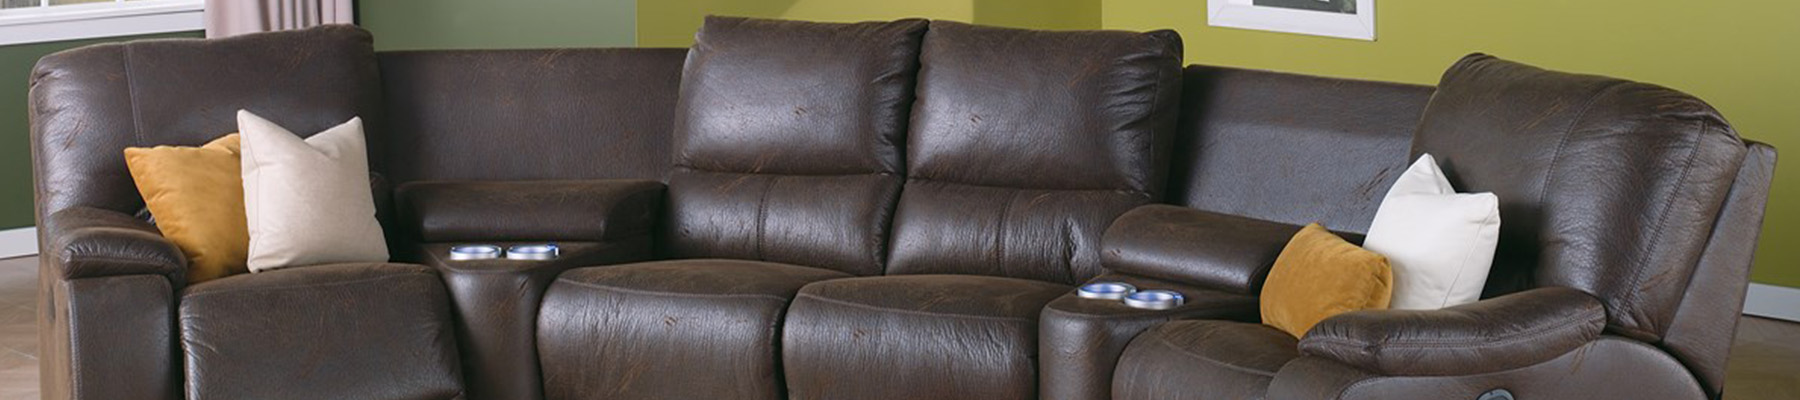 Home theater seating home theater furniture furnitureland south Home theater furniture amazon